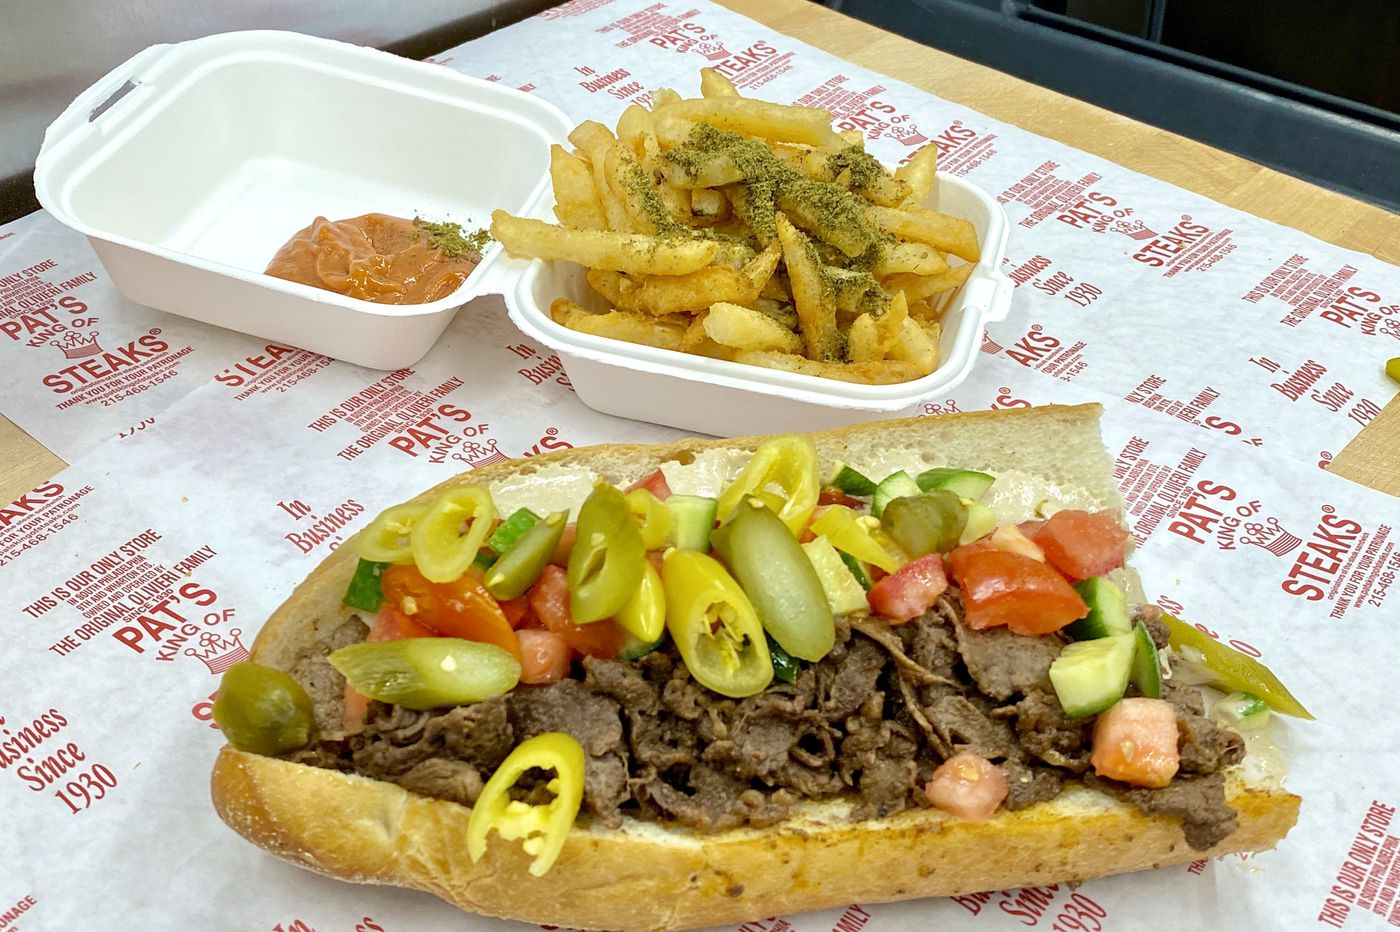 Get it while it's hot: An Israeli-style steak sandwich from Mike Solomonov and Pat's King of Steaks